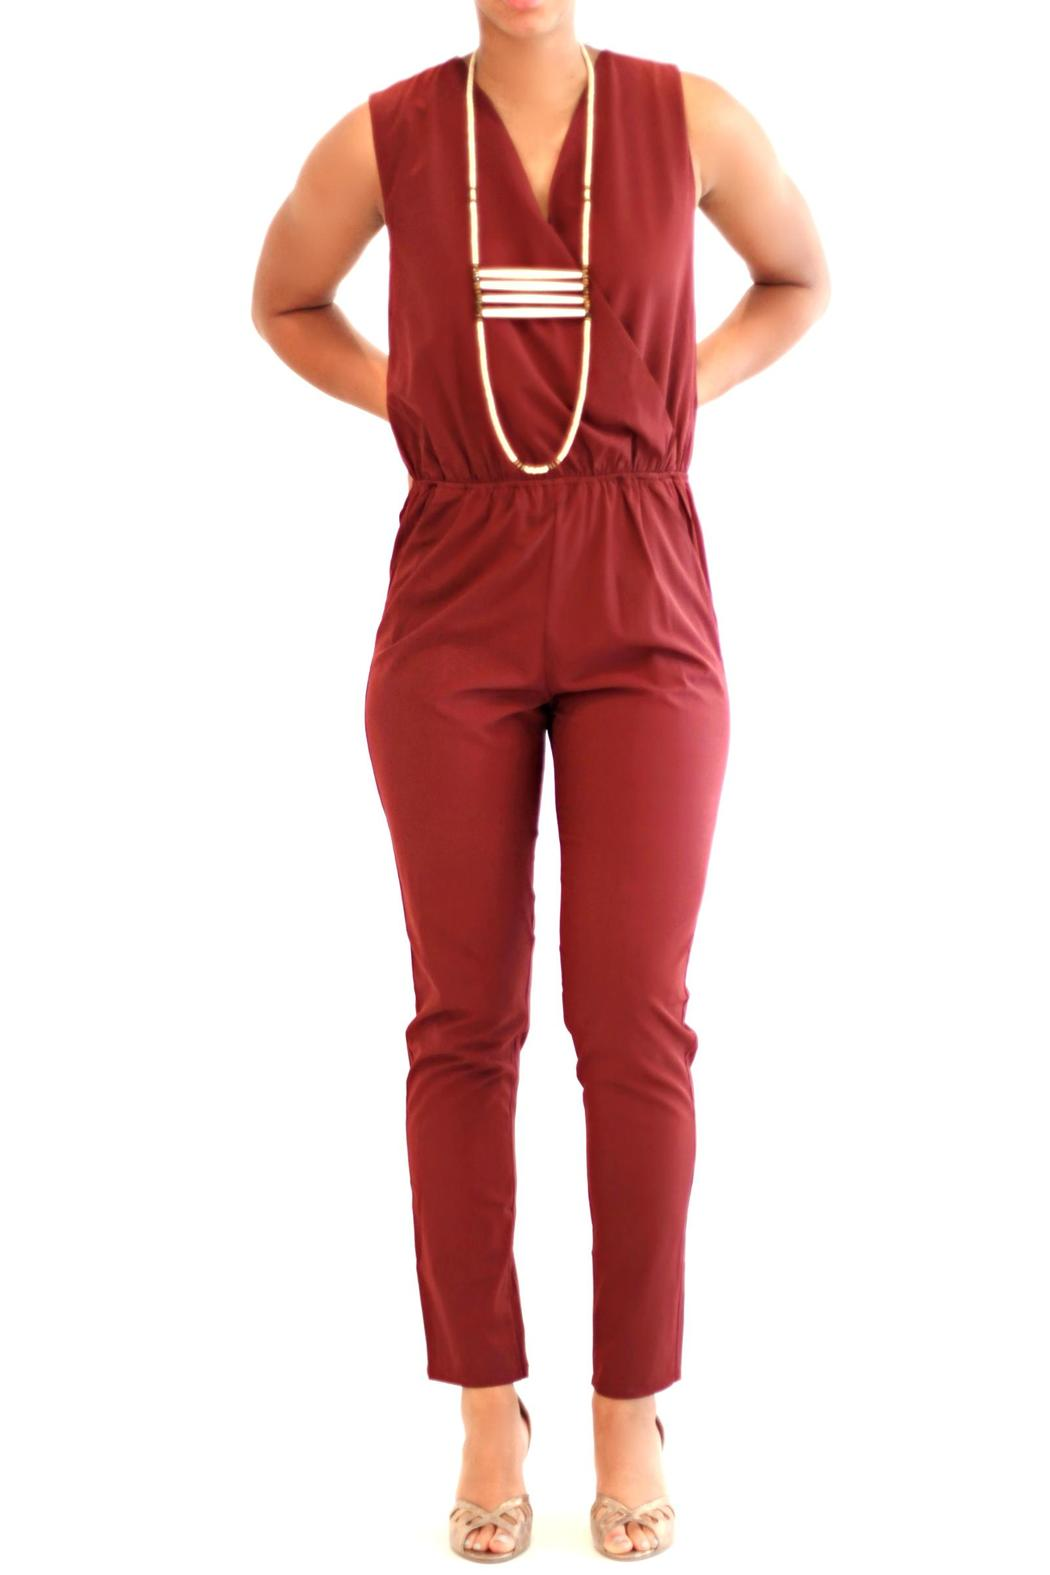 C Luce Burgundy Jumpsuit From Atlanta By Sole Shoes U0026 Accessories U2014 Shoptiques